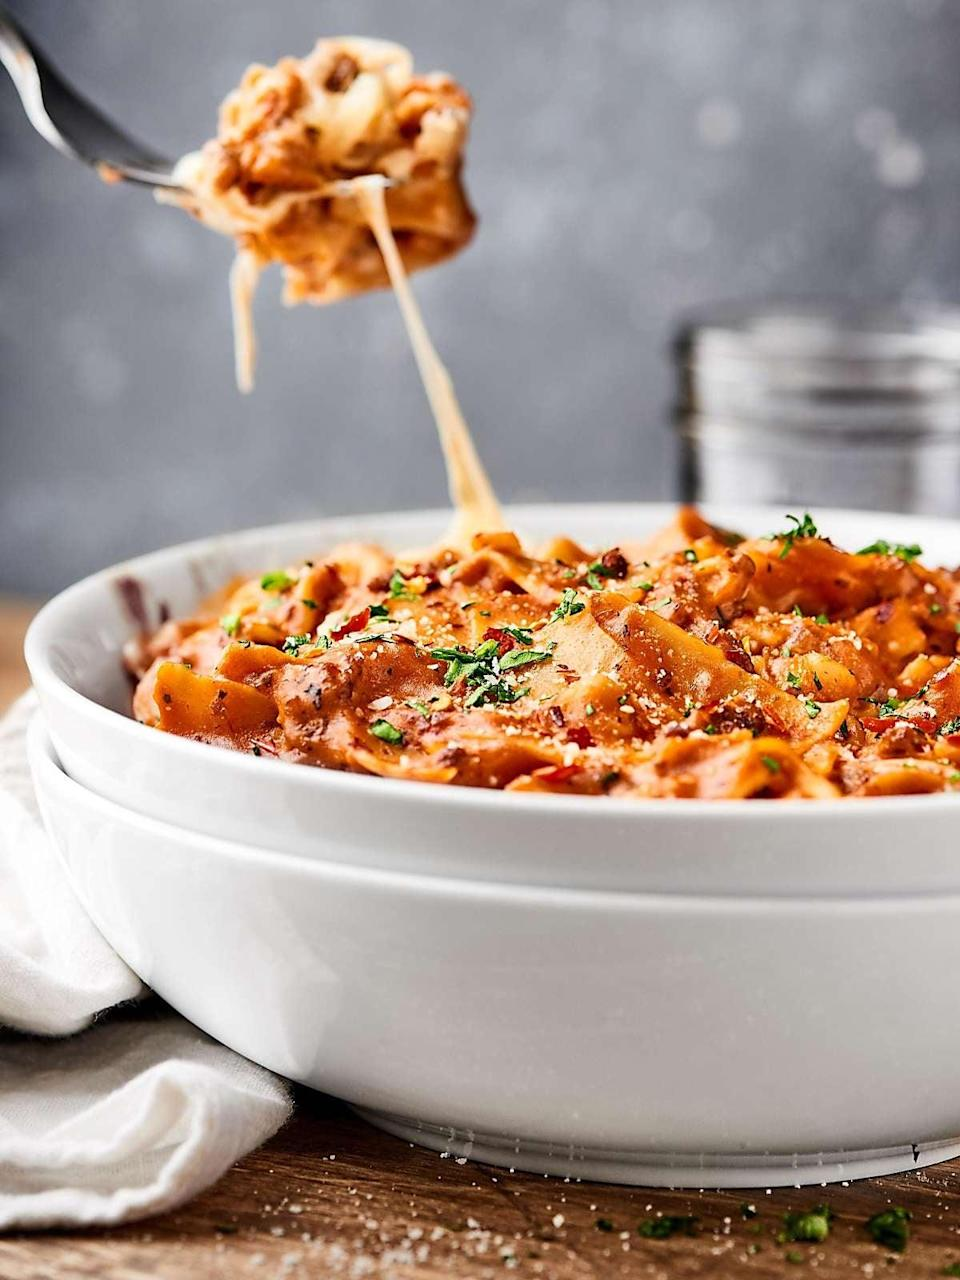 """<p>Make lasagna easier than ever with the help of this divine recipe. Italian sausage, zesty spices, fresh tomatoes, red wine, and cheese work together to make this one-pot wonder a dinner you won't soon forget. This recipe is easy to tweak, so just type in the amount of people you want to feed, and your work here is done.</p> <p><strong>Get the recipe:</strong> <a href=""""https://showmetheyummy.com/one-pot-lasagna-recipe/"""" class=""""link rapid-noclick-resp"""" rel=""""nofollow noopener"""" target=""""_blank"""" data-ylk=""""slk:one-pot lasagna"""">one-pot lasagna</a></p>"""